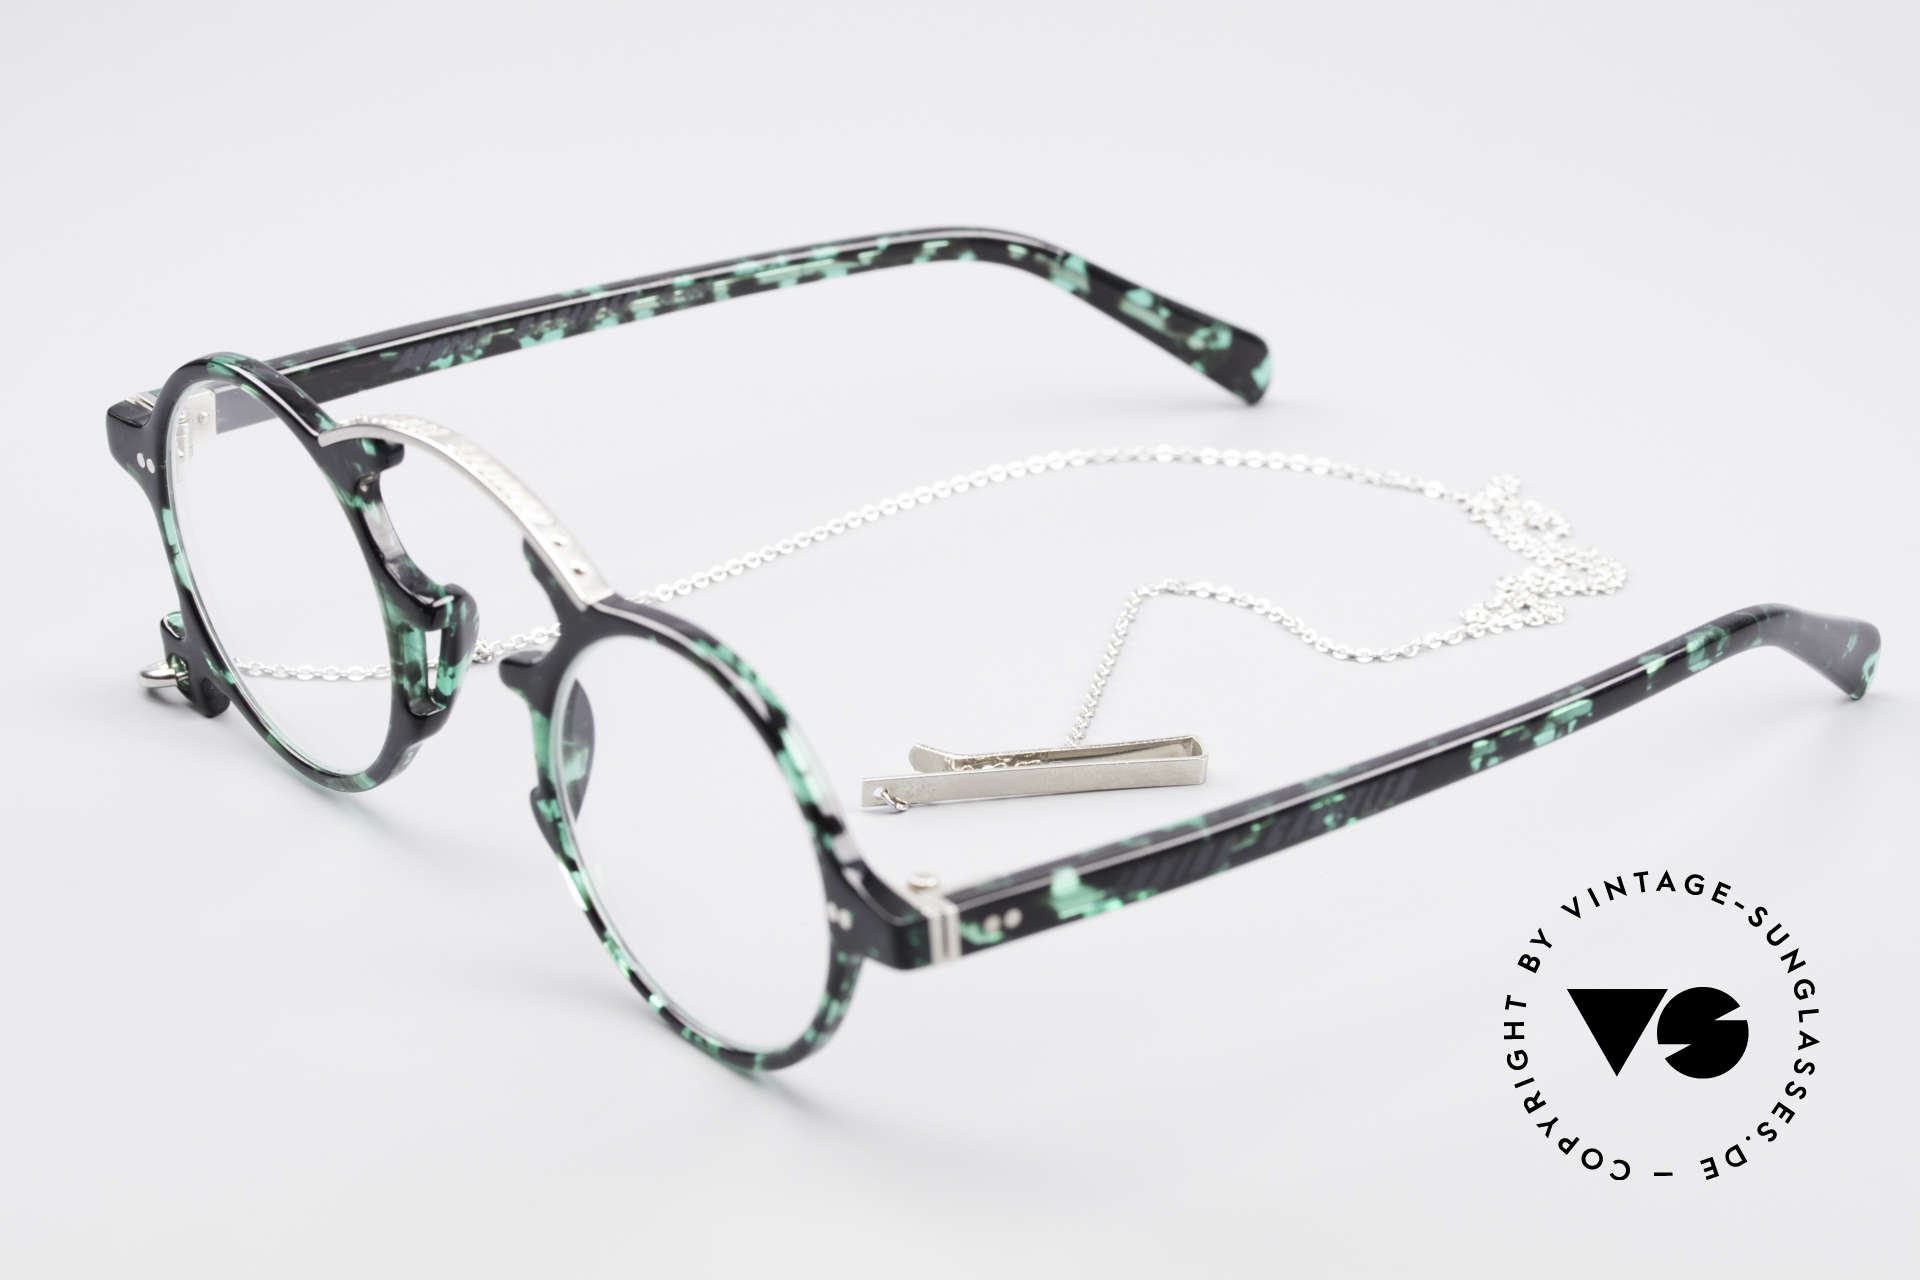 Jean Paul Gaultier 58-0271 90's Steampunk Eyeglasses, with a removable metal chain as fancy gimmick, Made for Men and Women